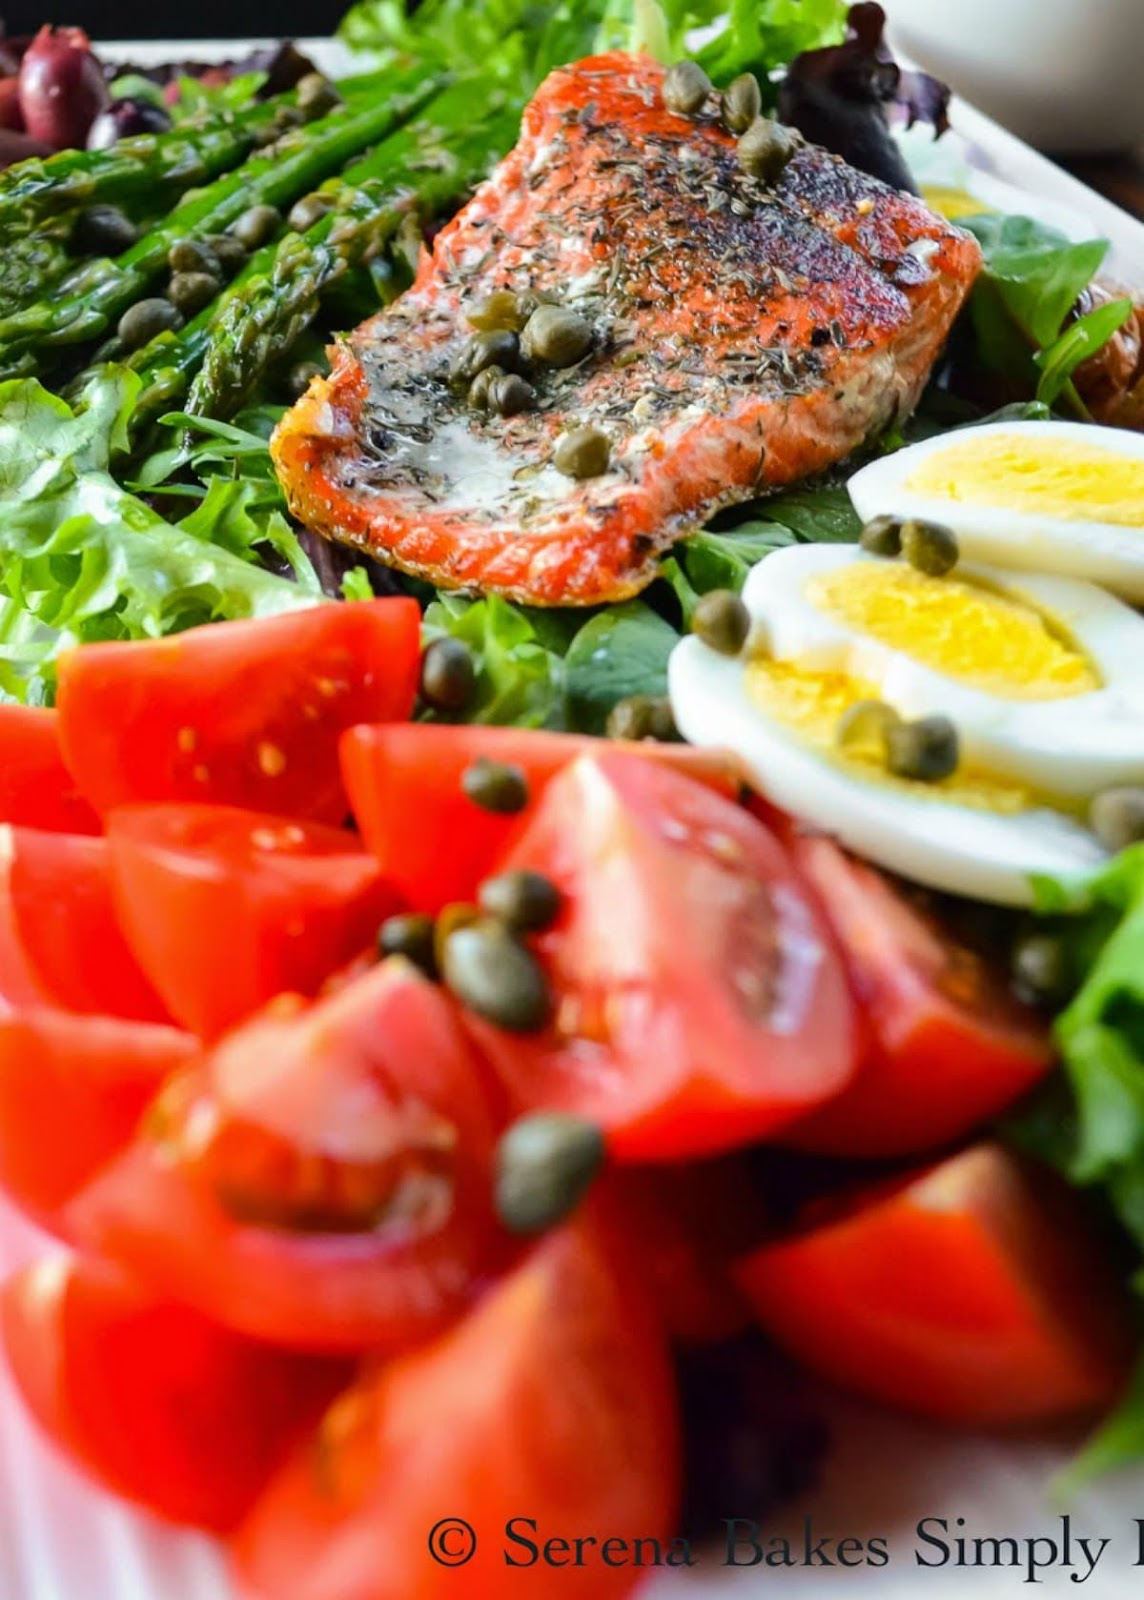 Salmon Nicoise Salad is a family favorite healthy dinner recipe like they serve at the Nordstrom Cafe from Serena Bakes Simply From Scratch.